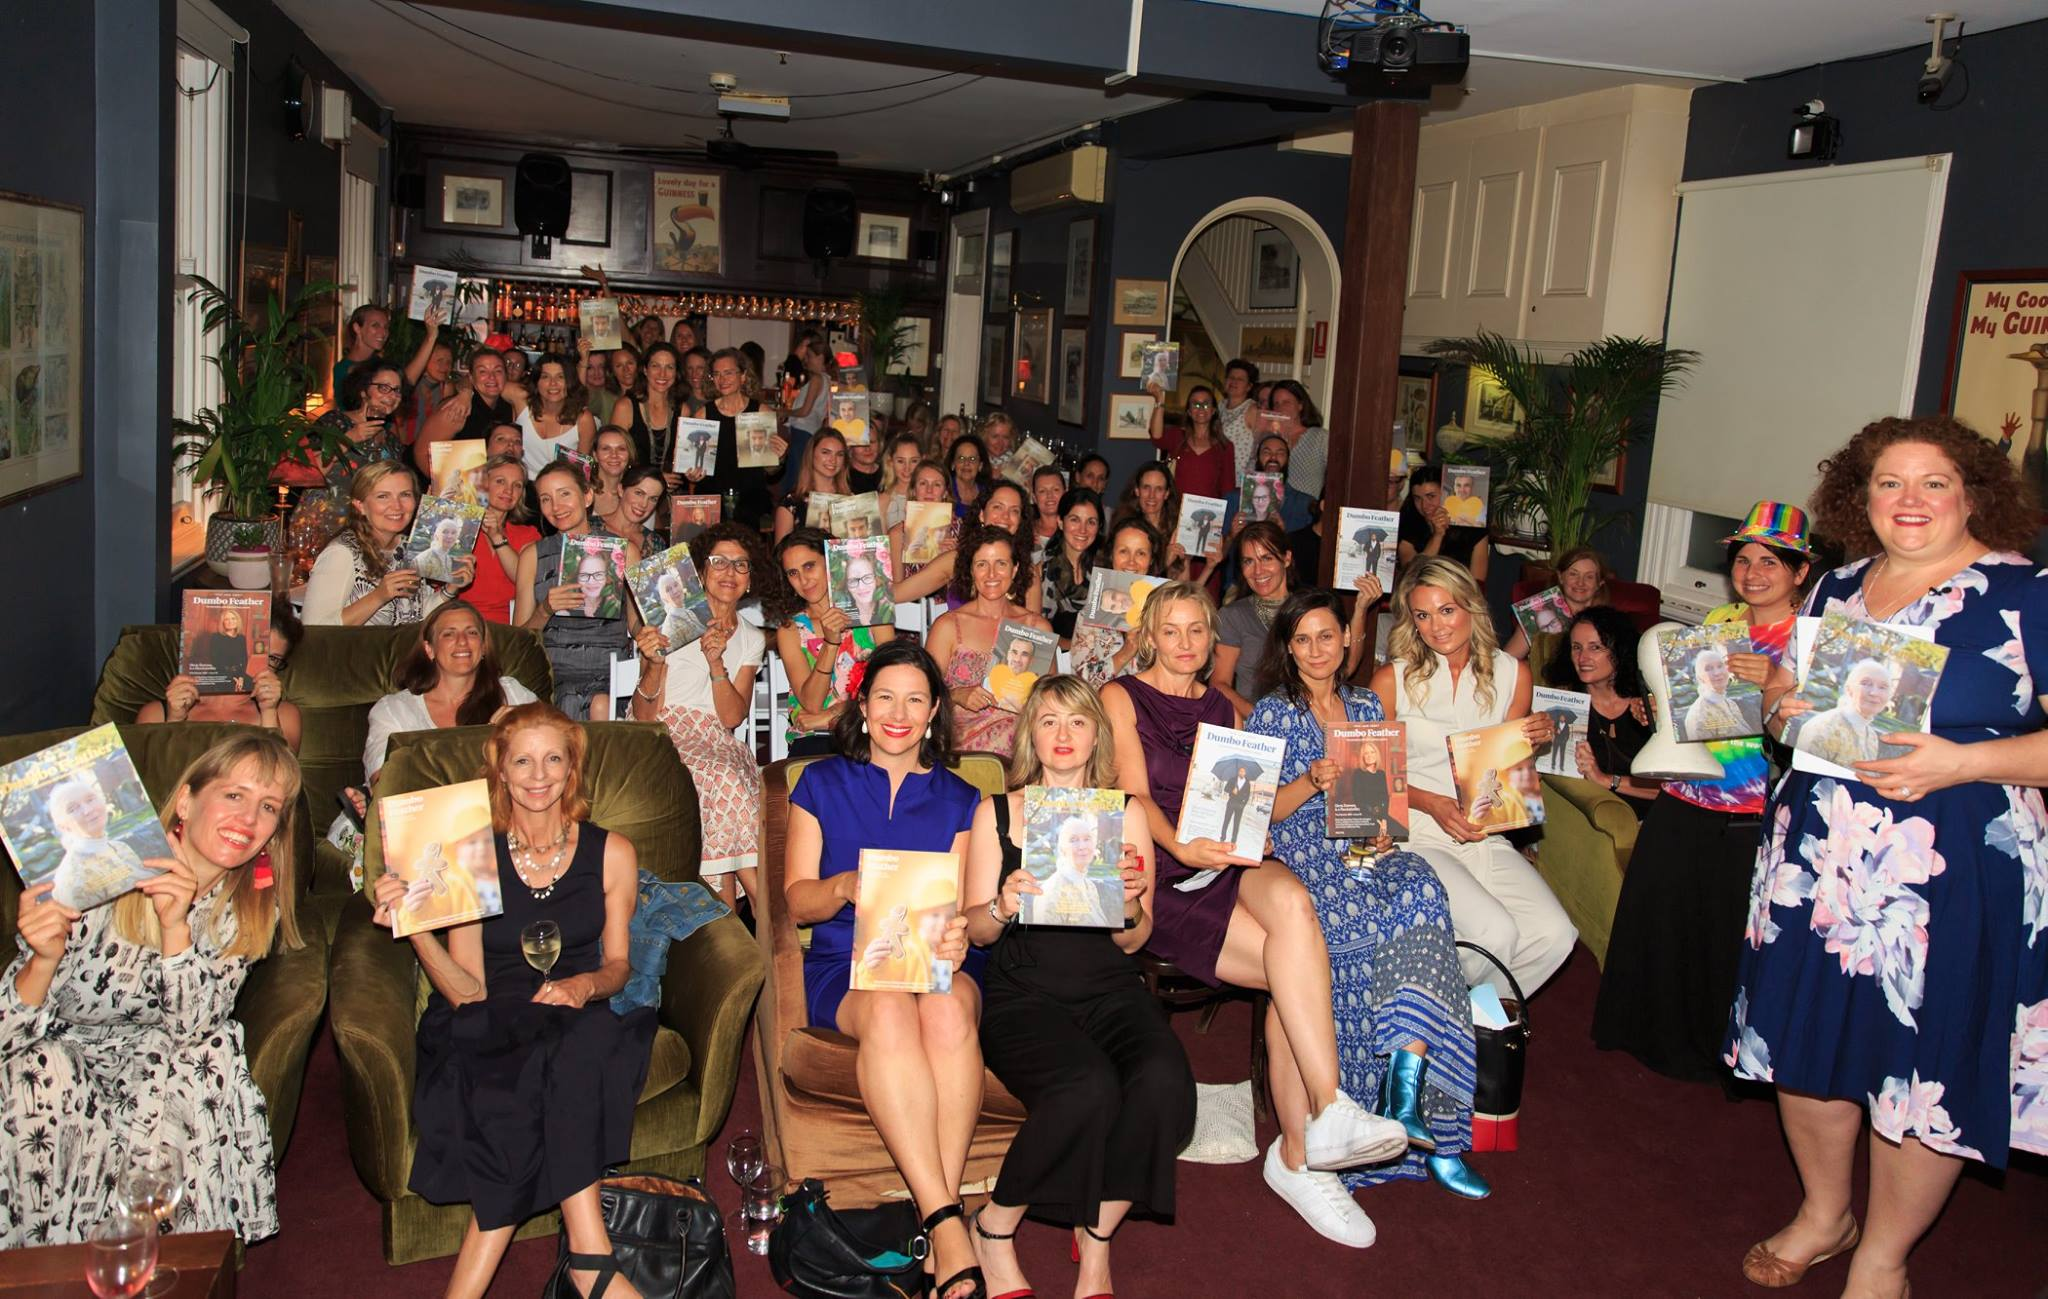 A packed room of creative women and 2 honourary mamas (dudes) at our Mama Creatives Story Slam, where 6 mamas from our community shared personal stories about the theme of Courage, hosted by the fabulous Bron Maxabella, writer, editor, founder of Maxabella Loves and Mumlyfe.